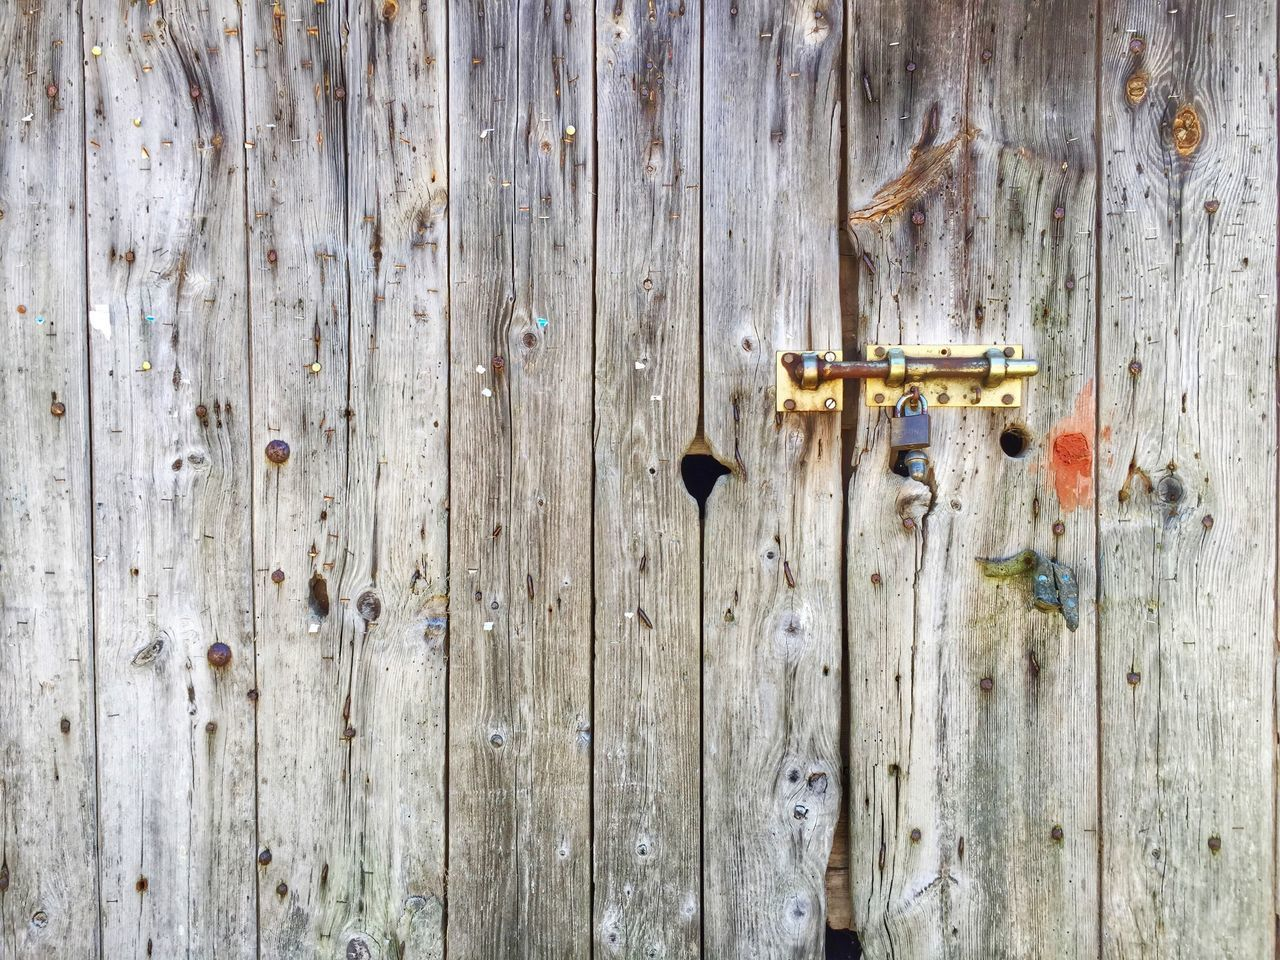 wood - material, door, outdoors, safety, textured, weathered, close-up, protection, day, no people, full frame, backgrounds, latch